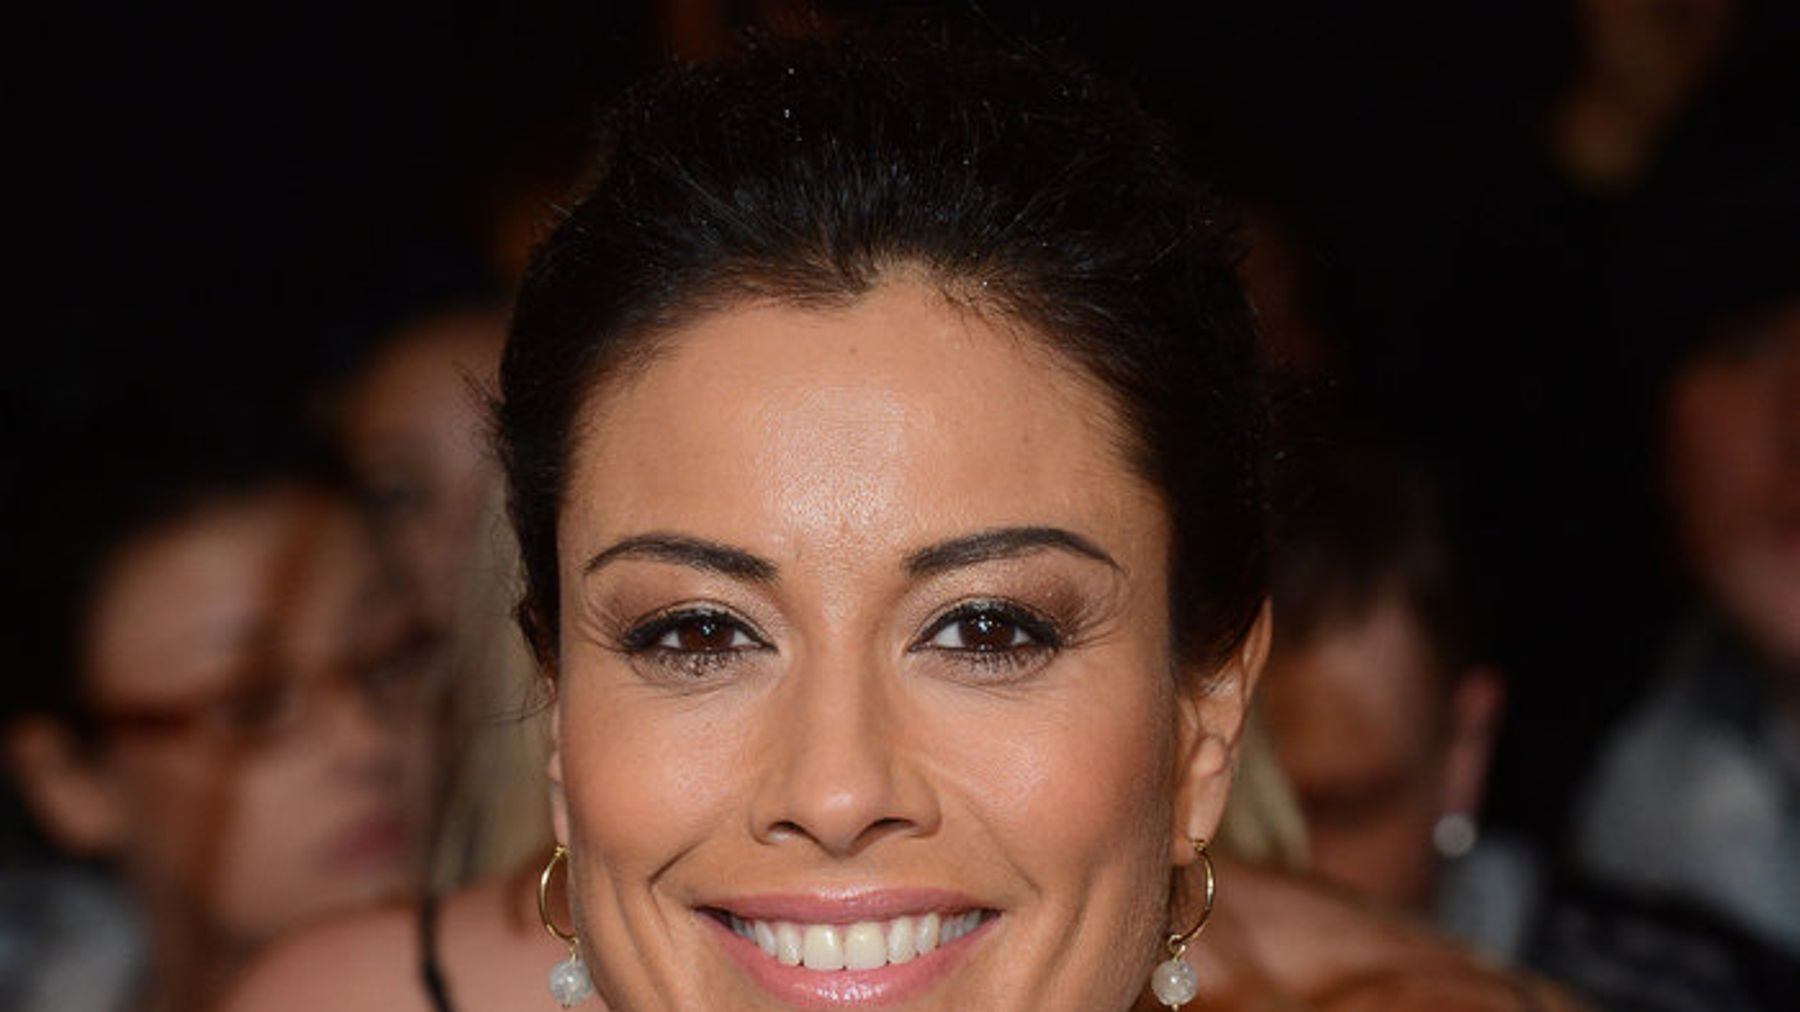 Melanie Sykes opens up about 'painful' divorce: 'I regret